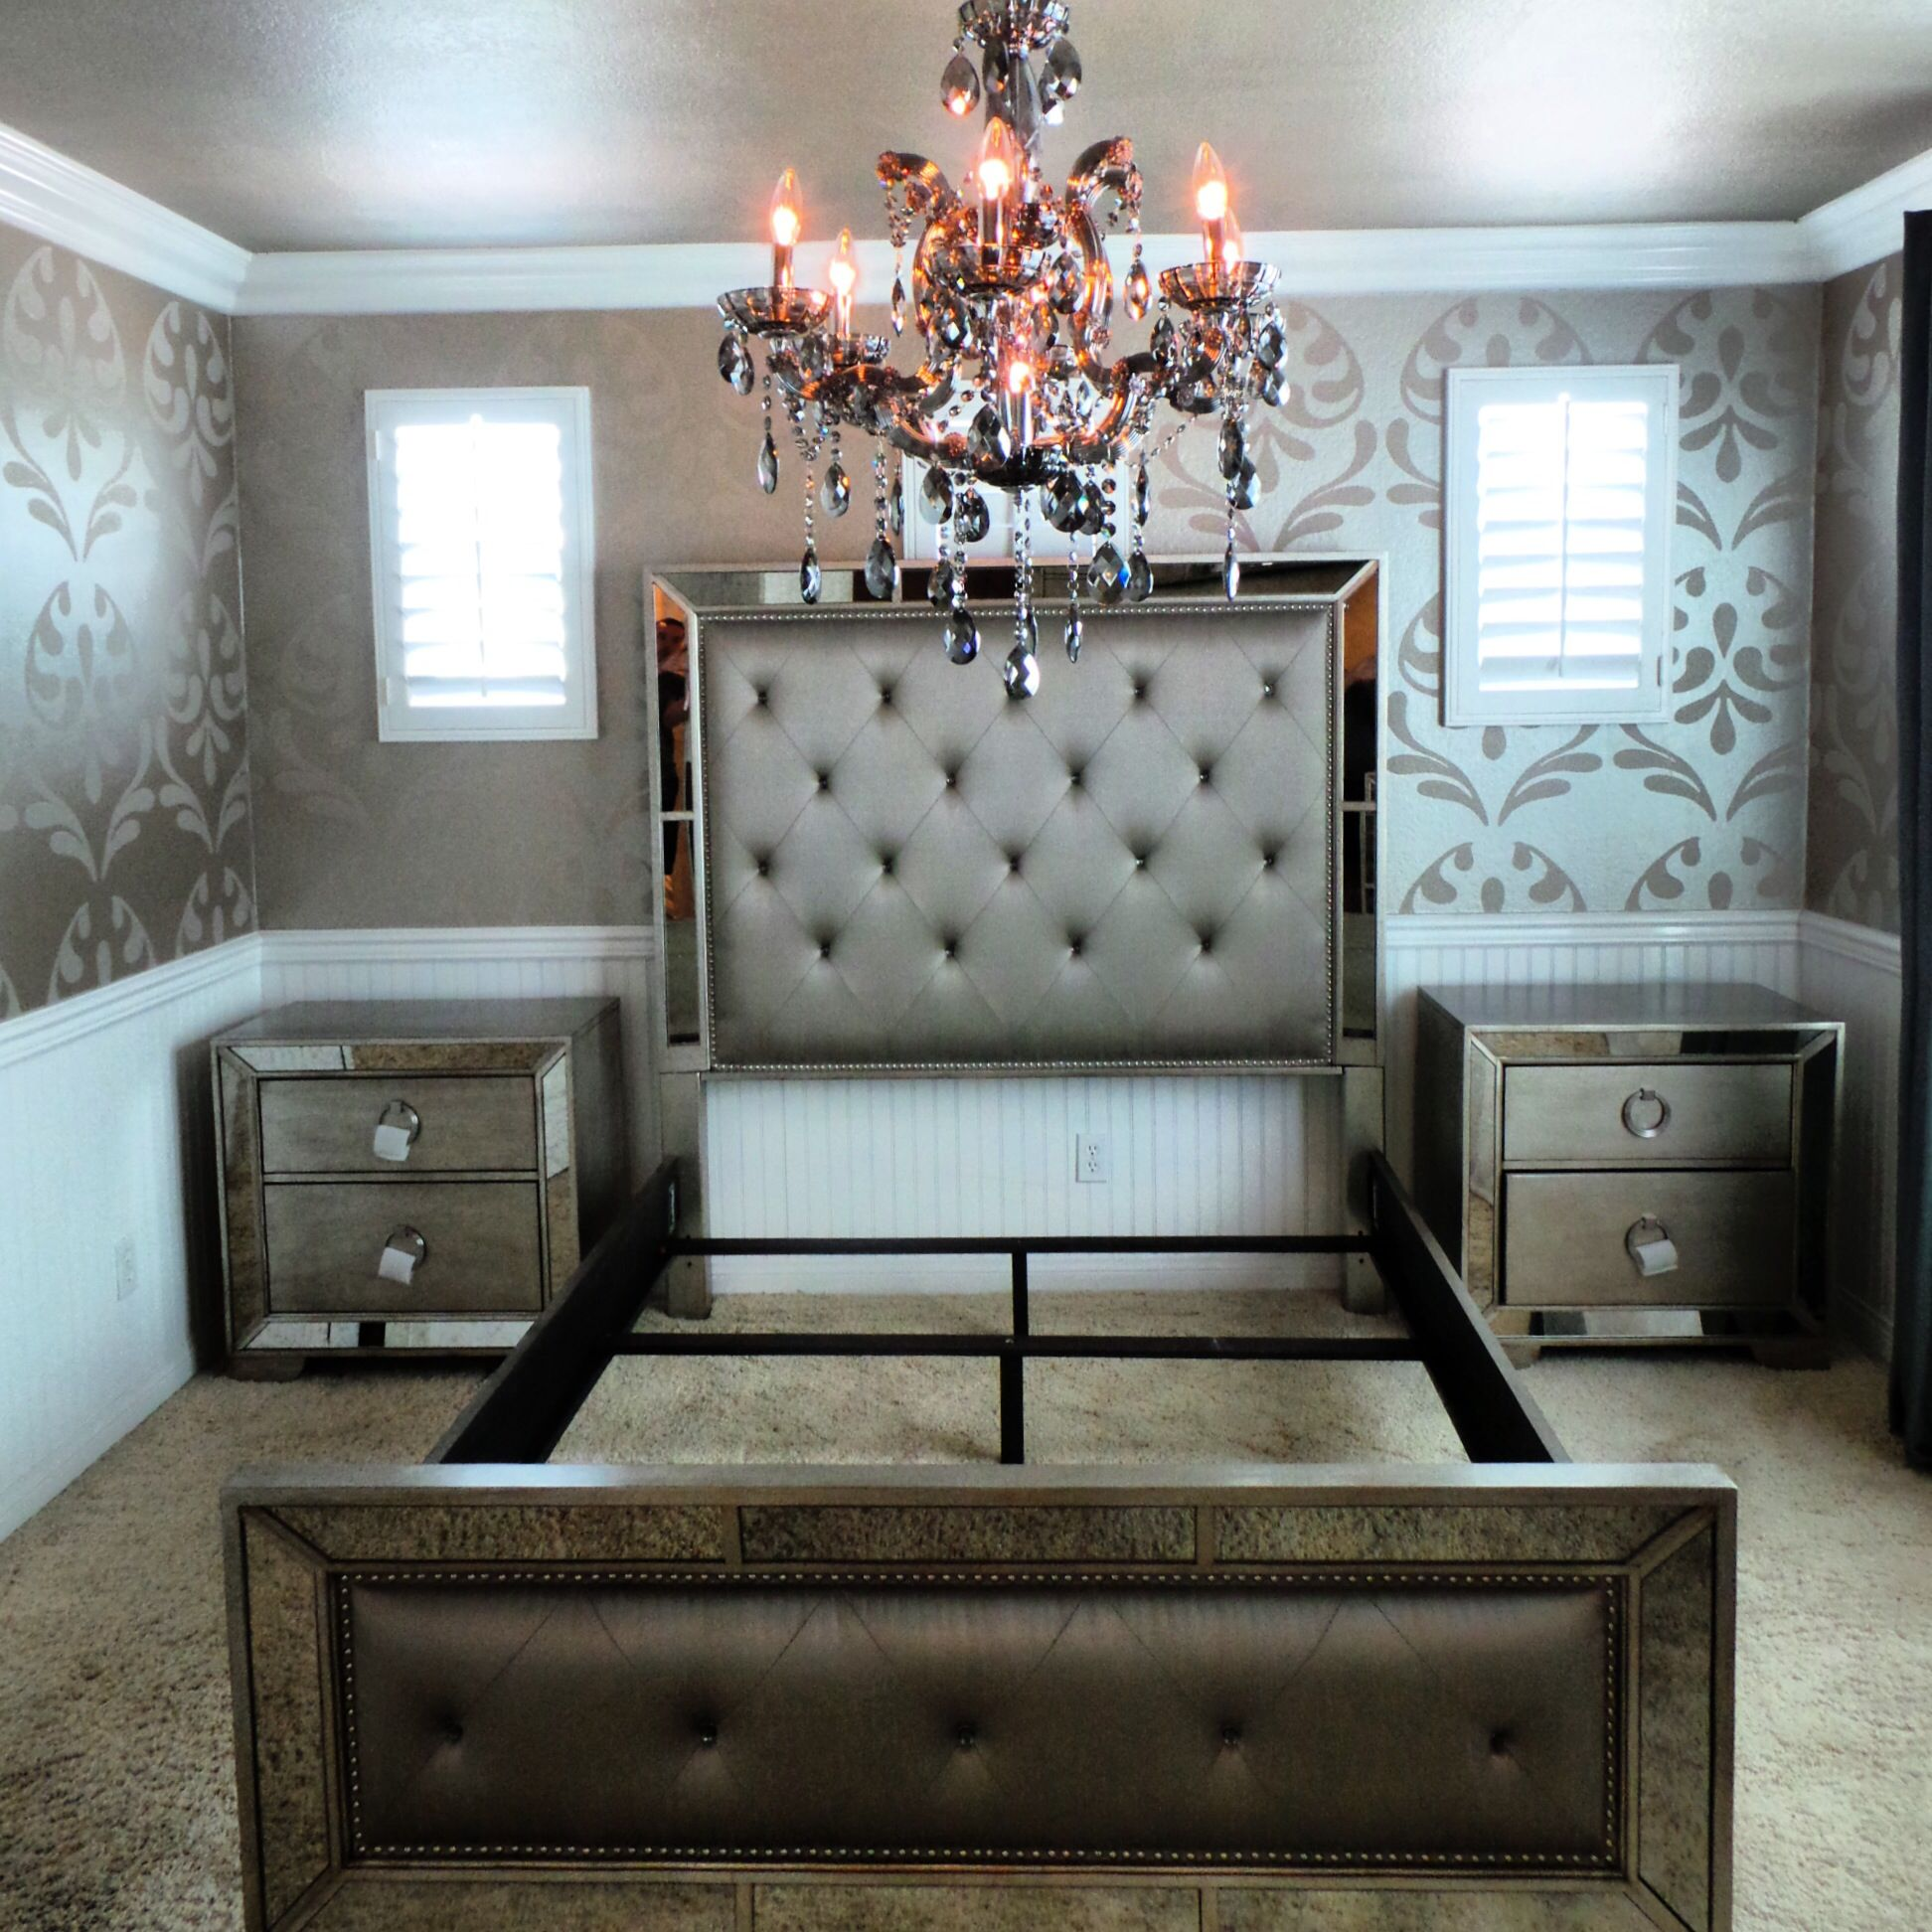 Enhance your home decor with this elegant Celine mirrored and upholstered  tufted queen size bedroom set  This set features mirrored panels and  includes a. Guest room remodel still in progress  Enhance your home decor with